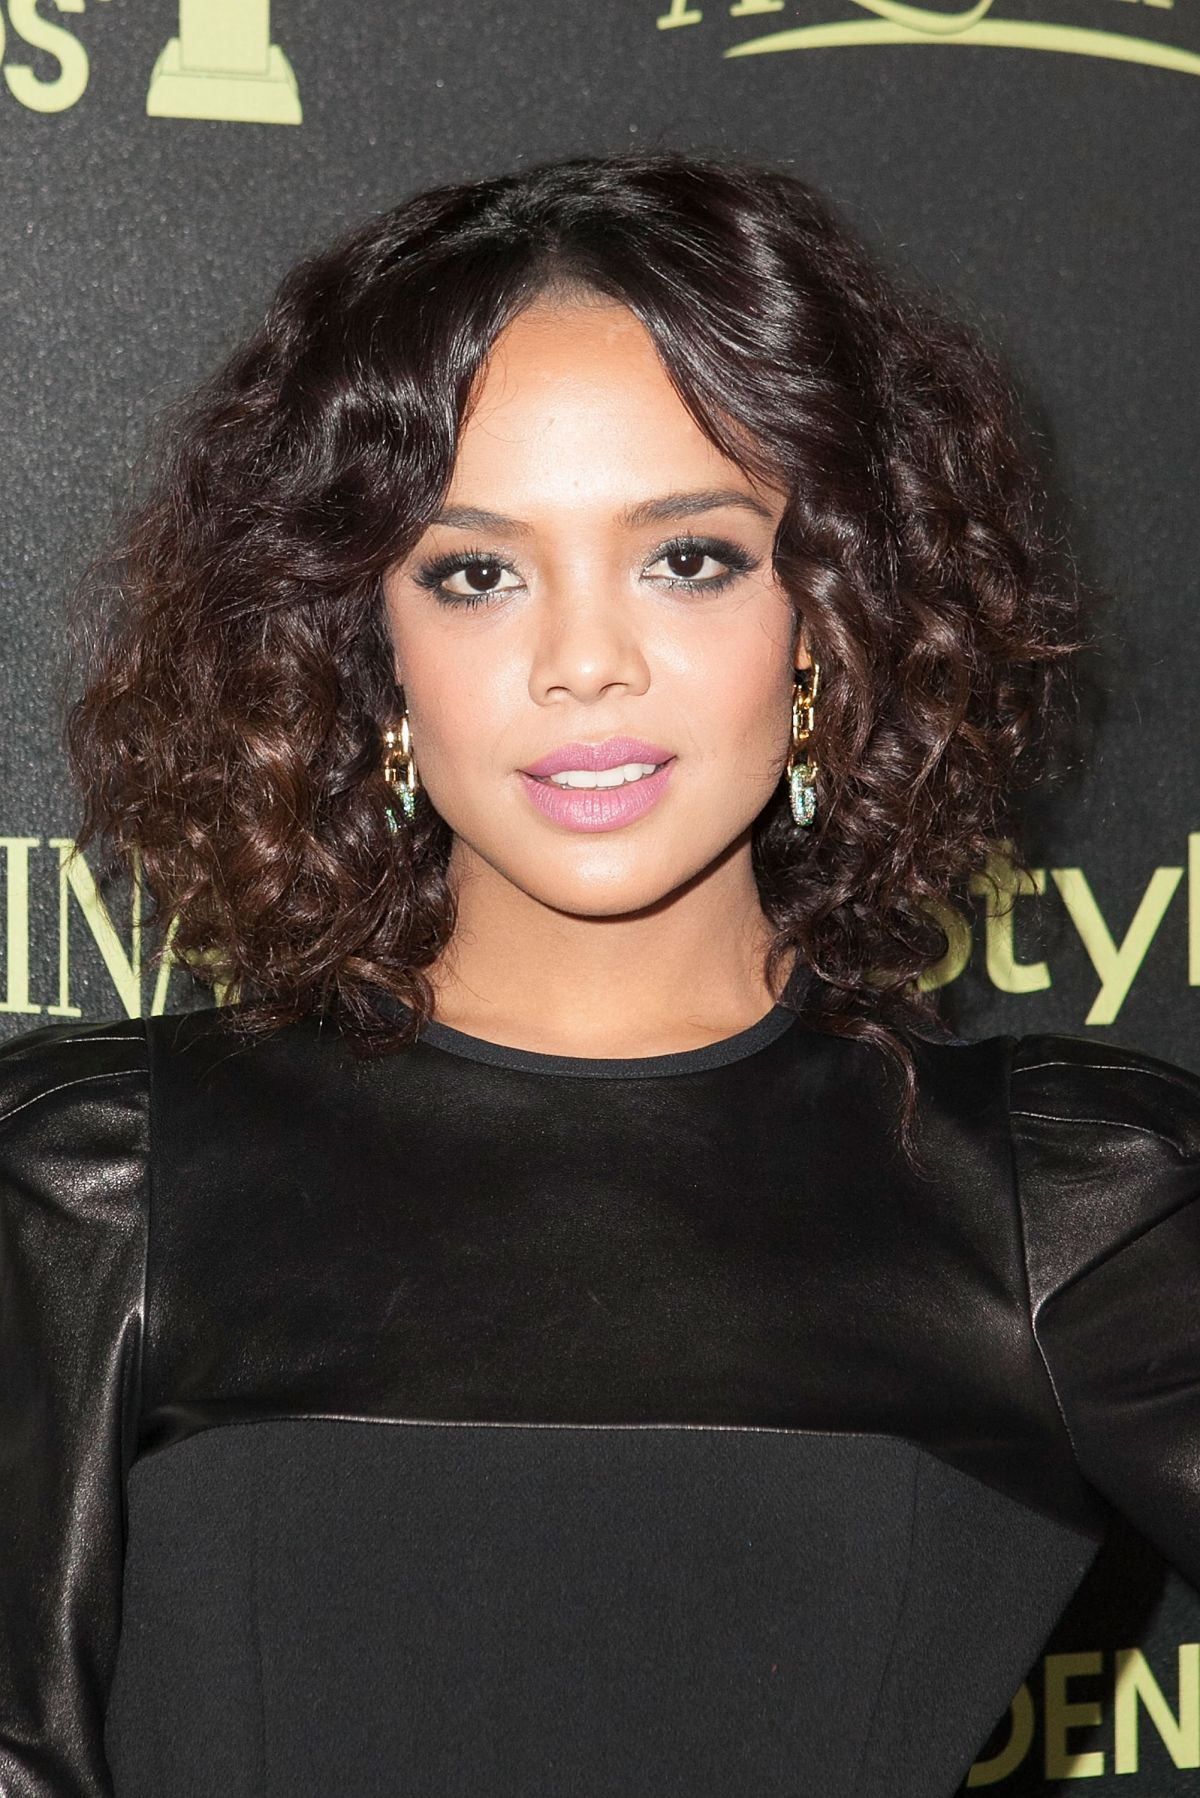 Tessa Thompson At Hfpa Amp Instyle Celebrate 2015 Golden